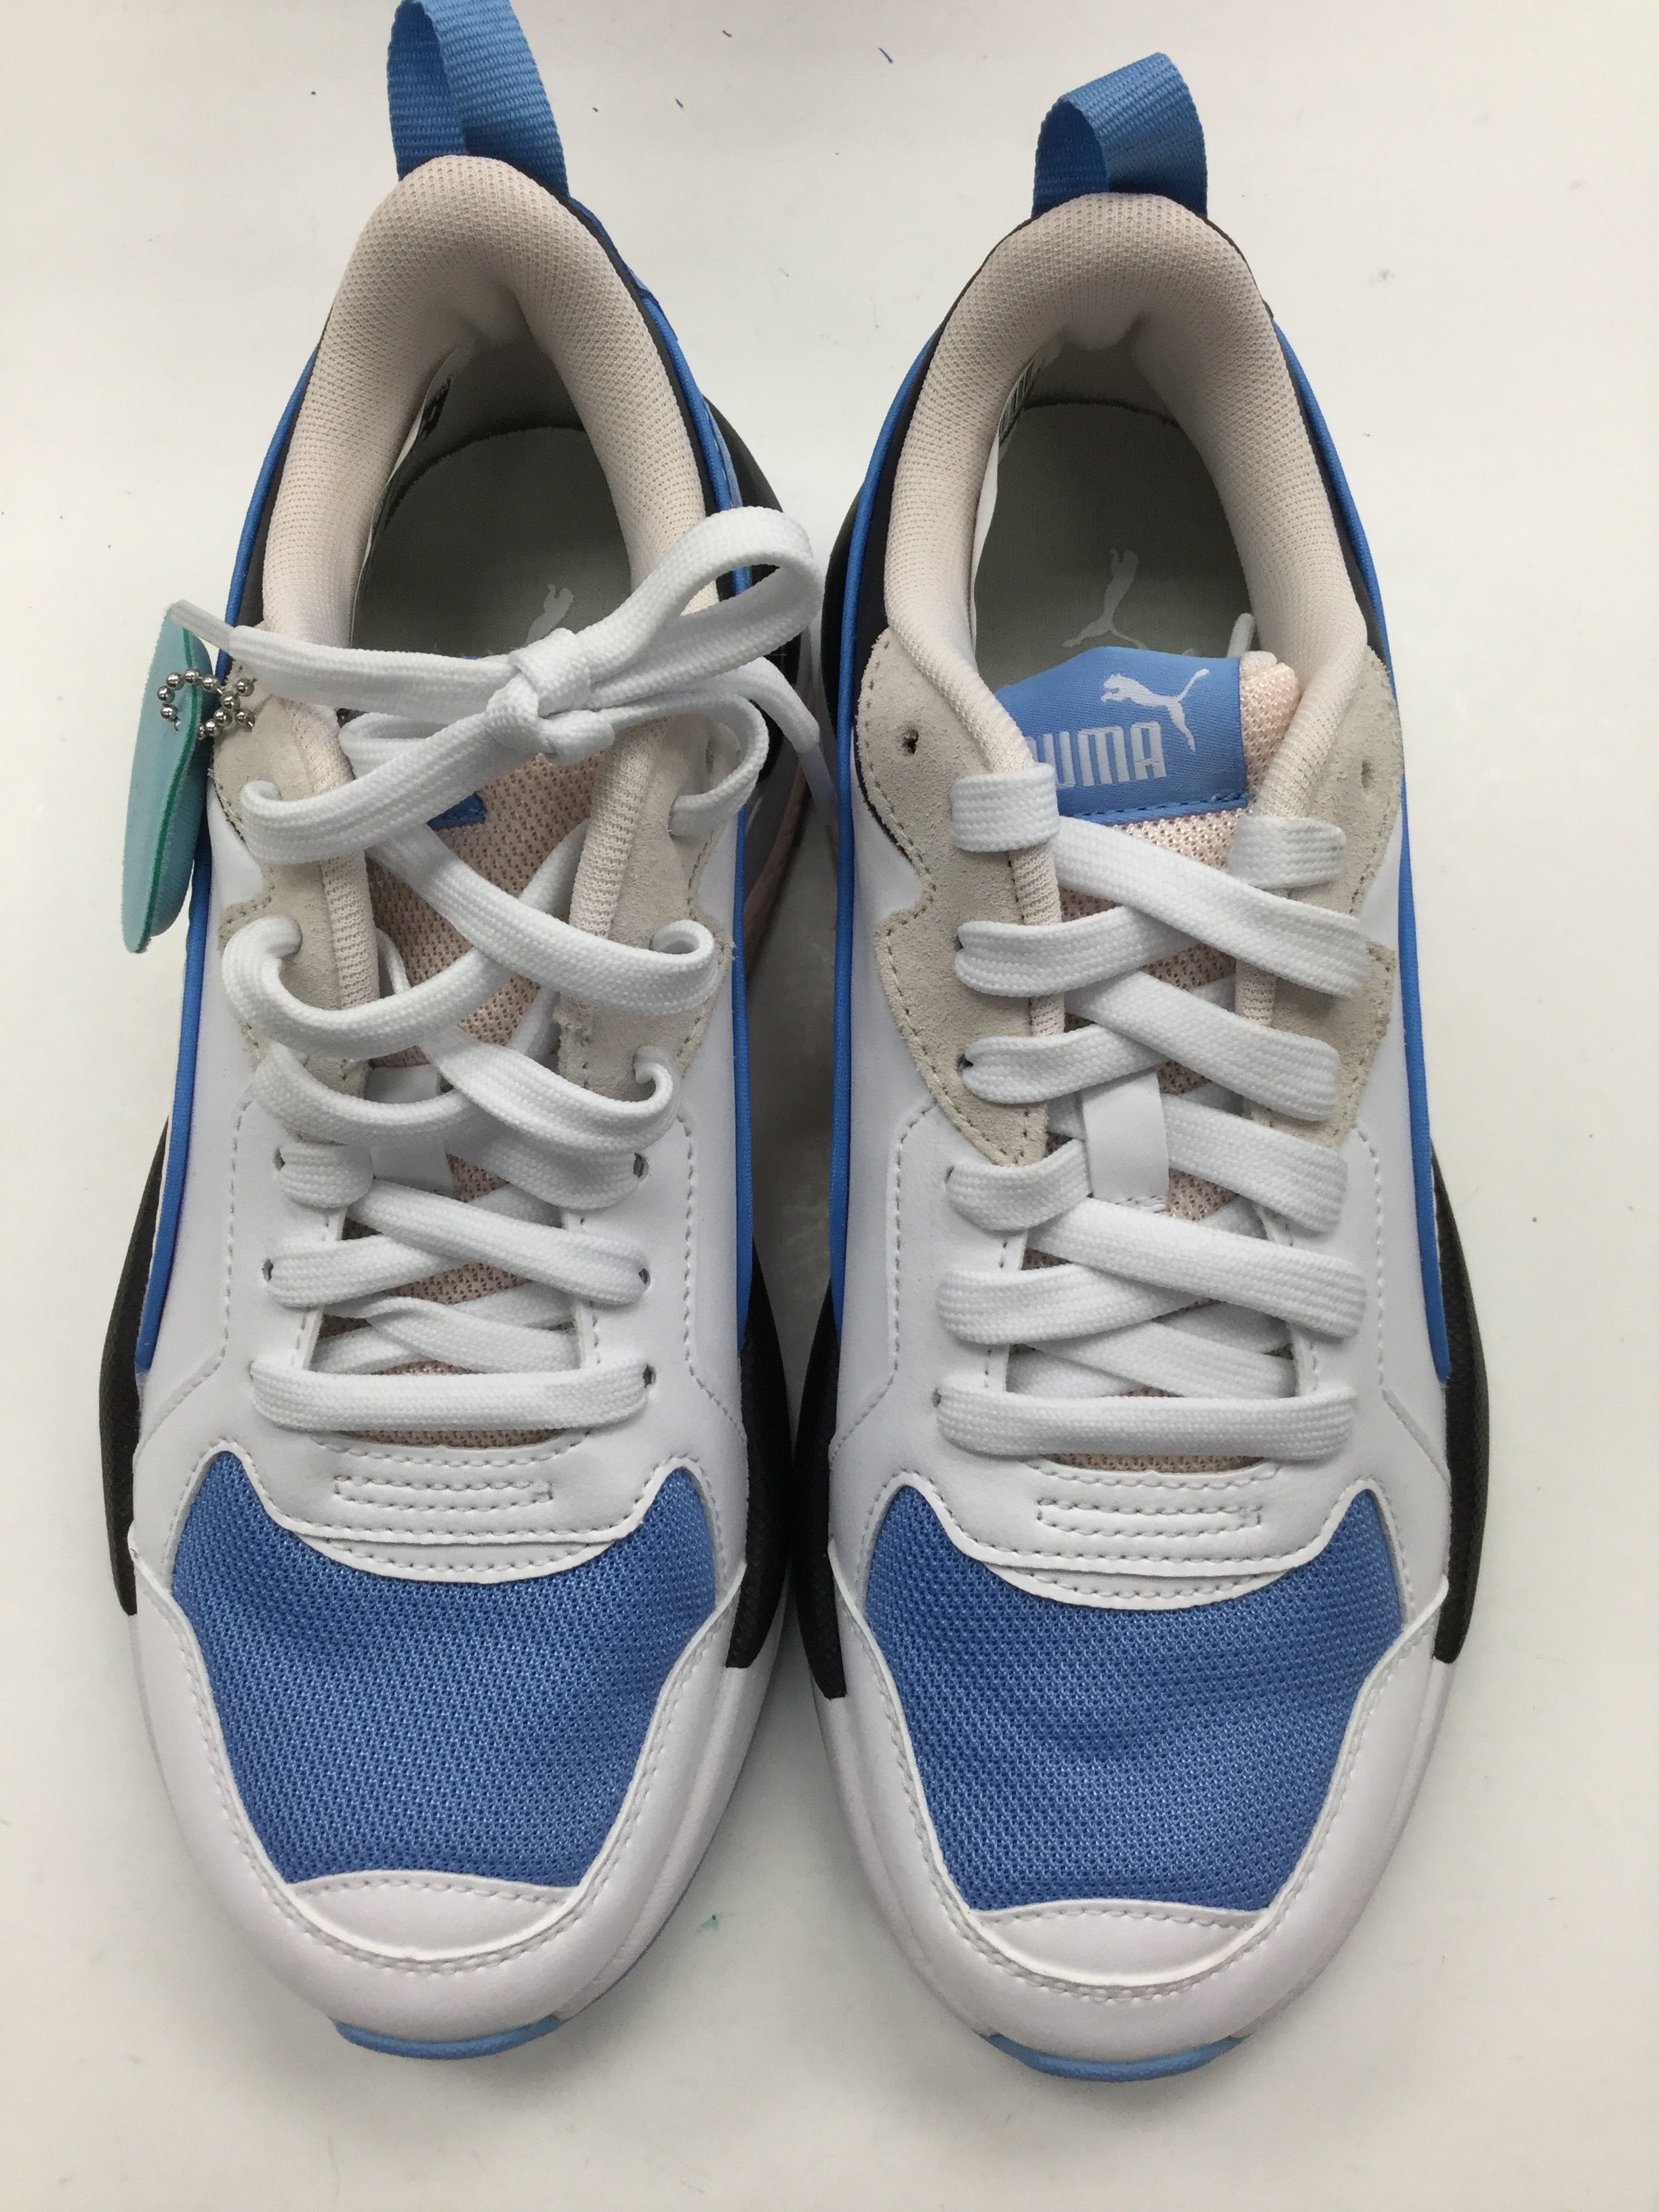 Primary Photo - BRAND: PUMA <BR>STYLE: SHOES ATHLETIC <BR>COLOR: BLUE <BR>SIZE: 7.5 <BR>SKU: 155-15599-232961<BR>POWDER BLUE, PALE PINK, AND BLACK.